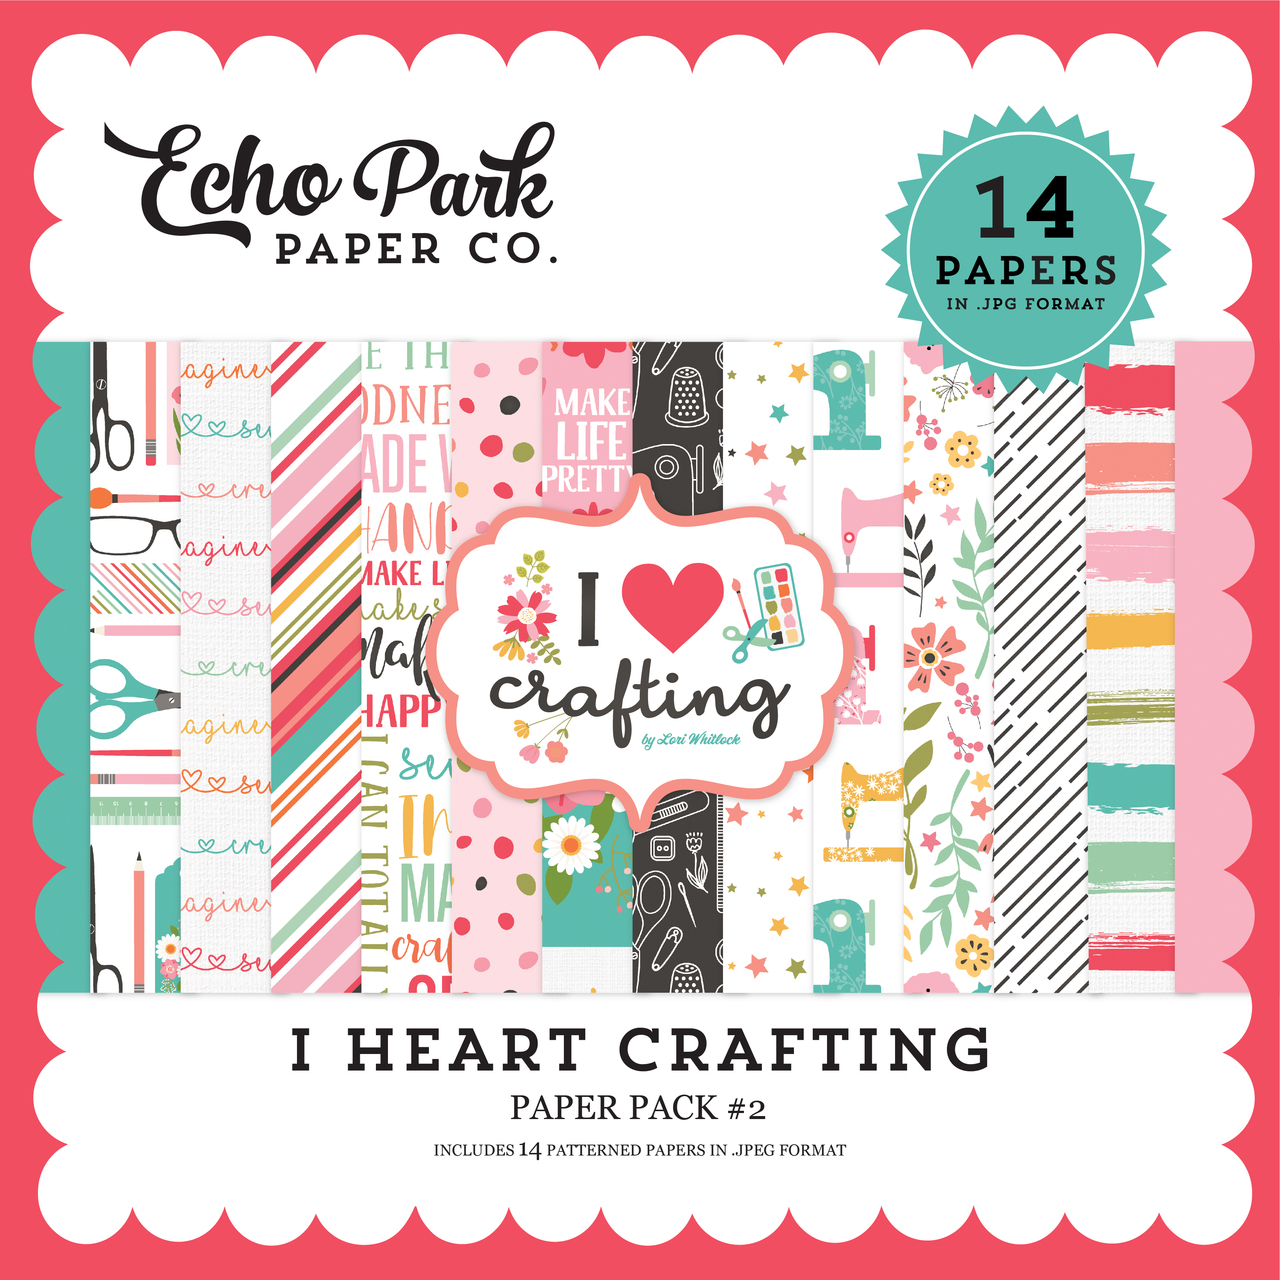 I Heart Crafting Paper Pack #2